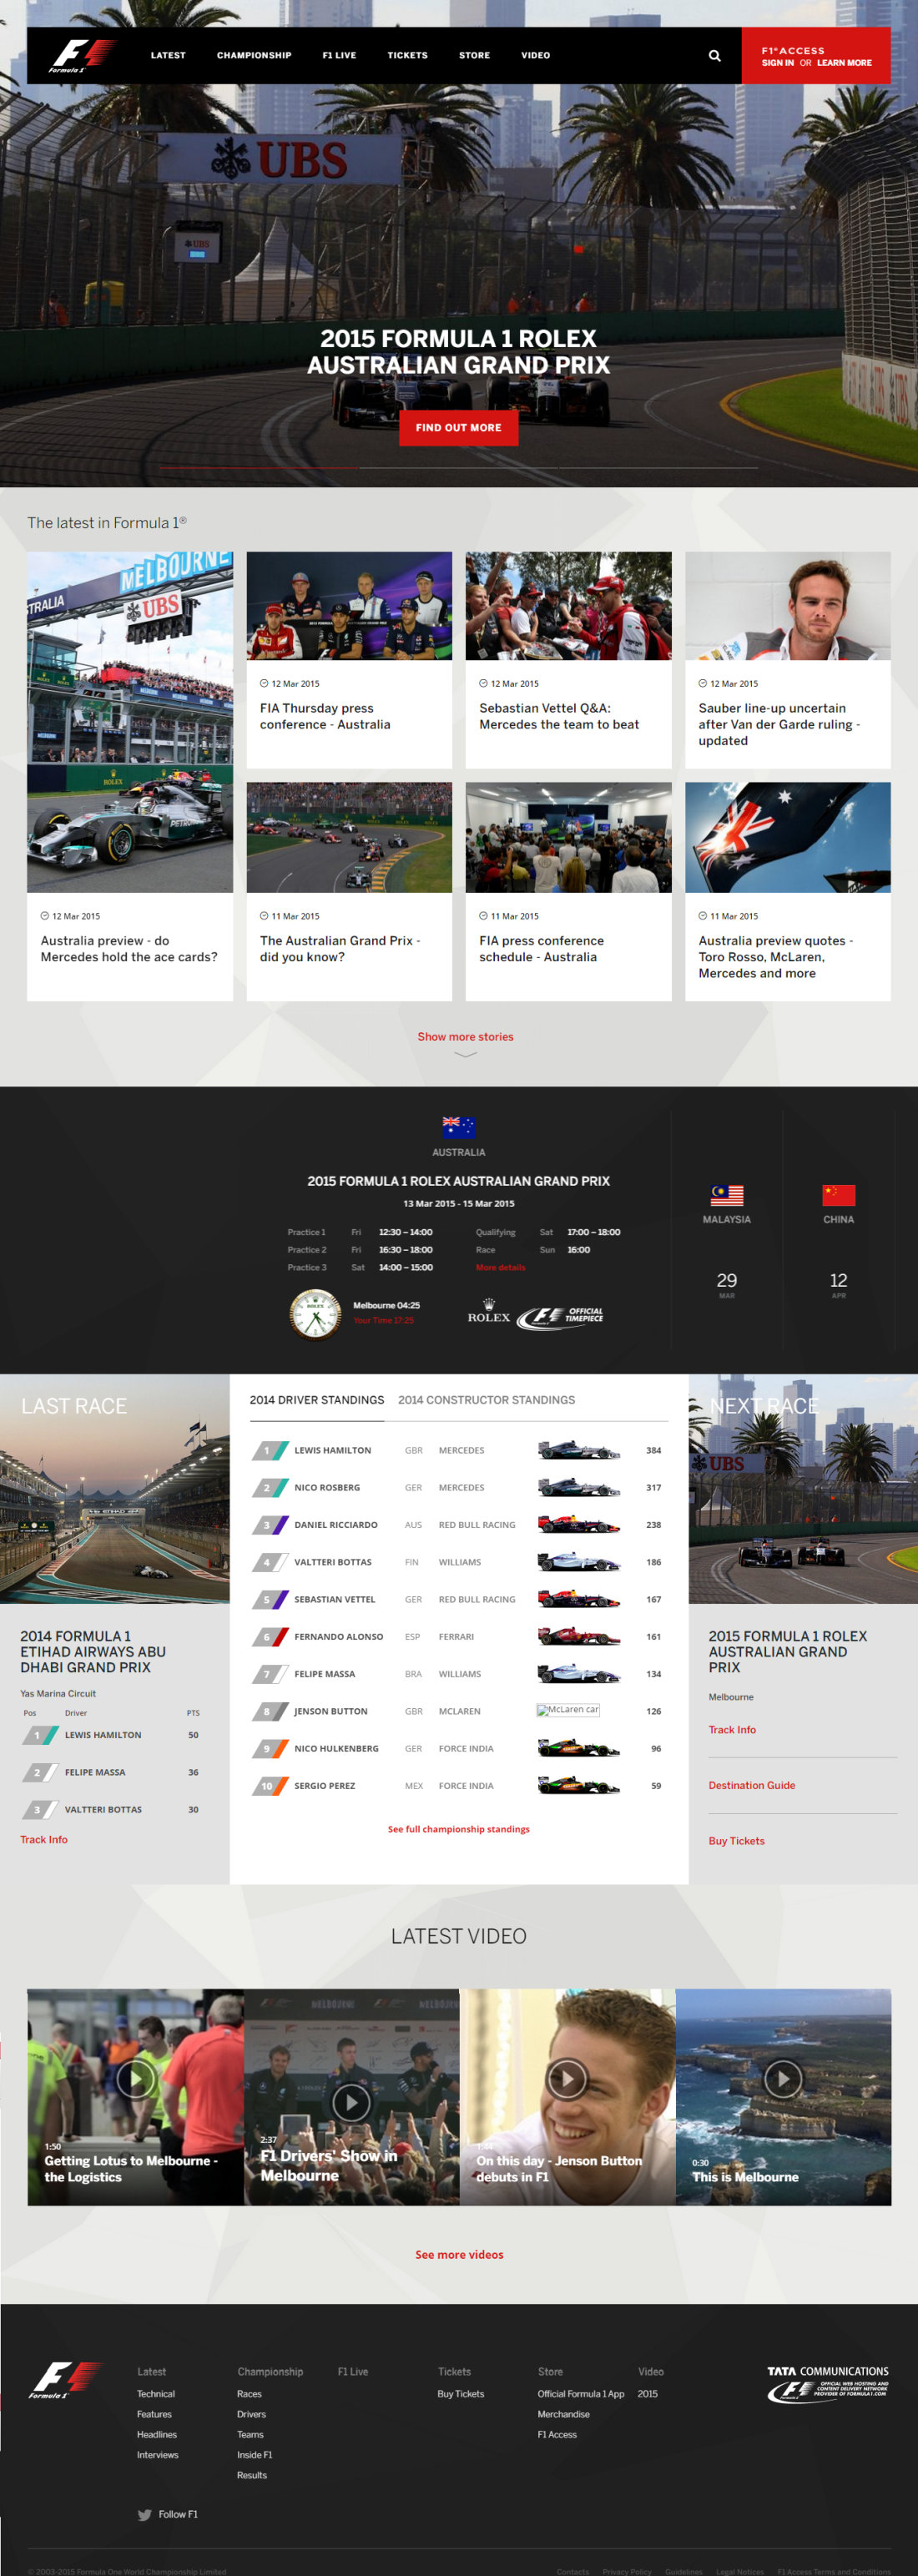 On the eve of the 2015 Australian Grand Prix, the homepage of the brand new Formula 1 website.